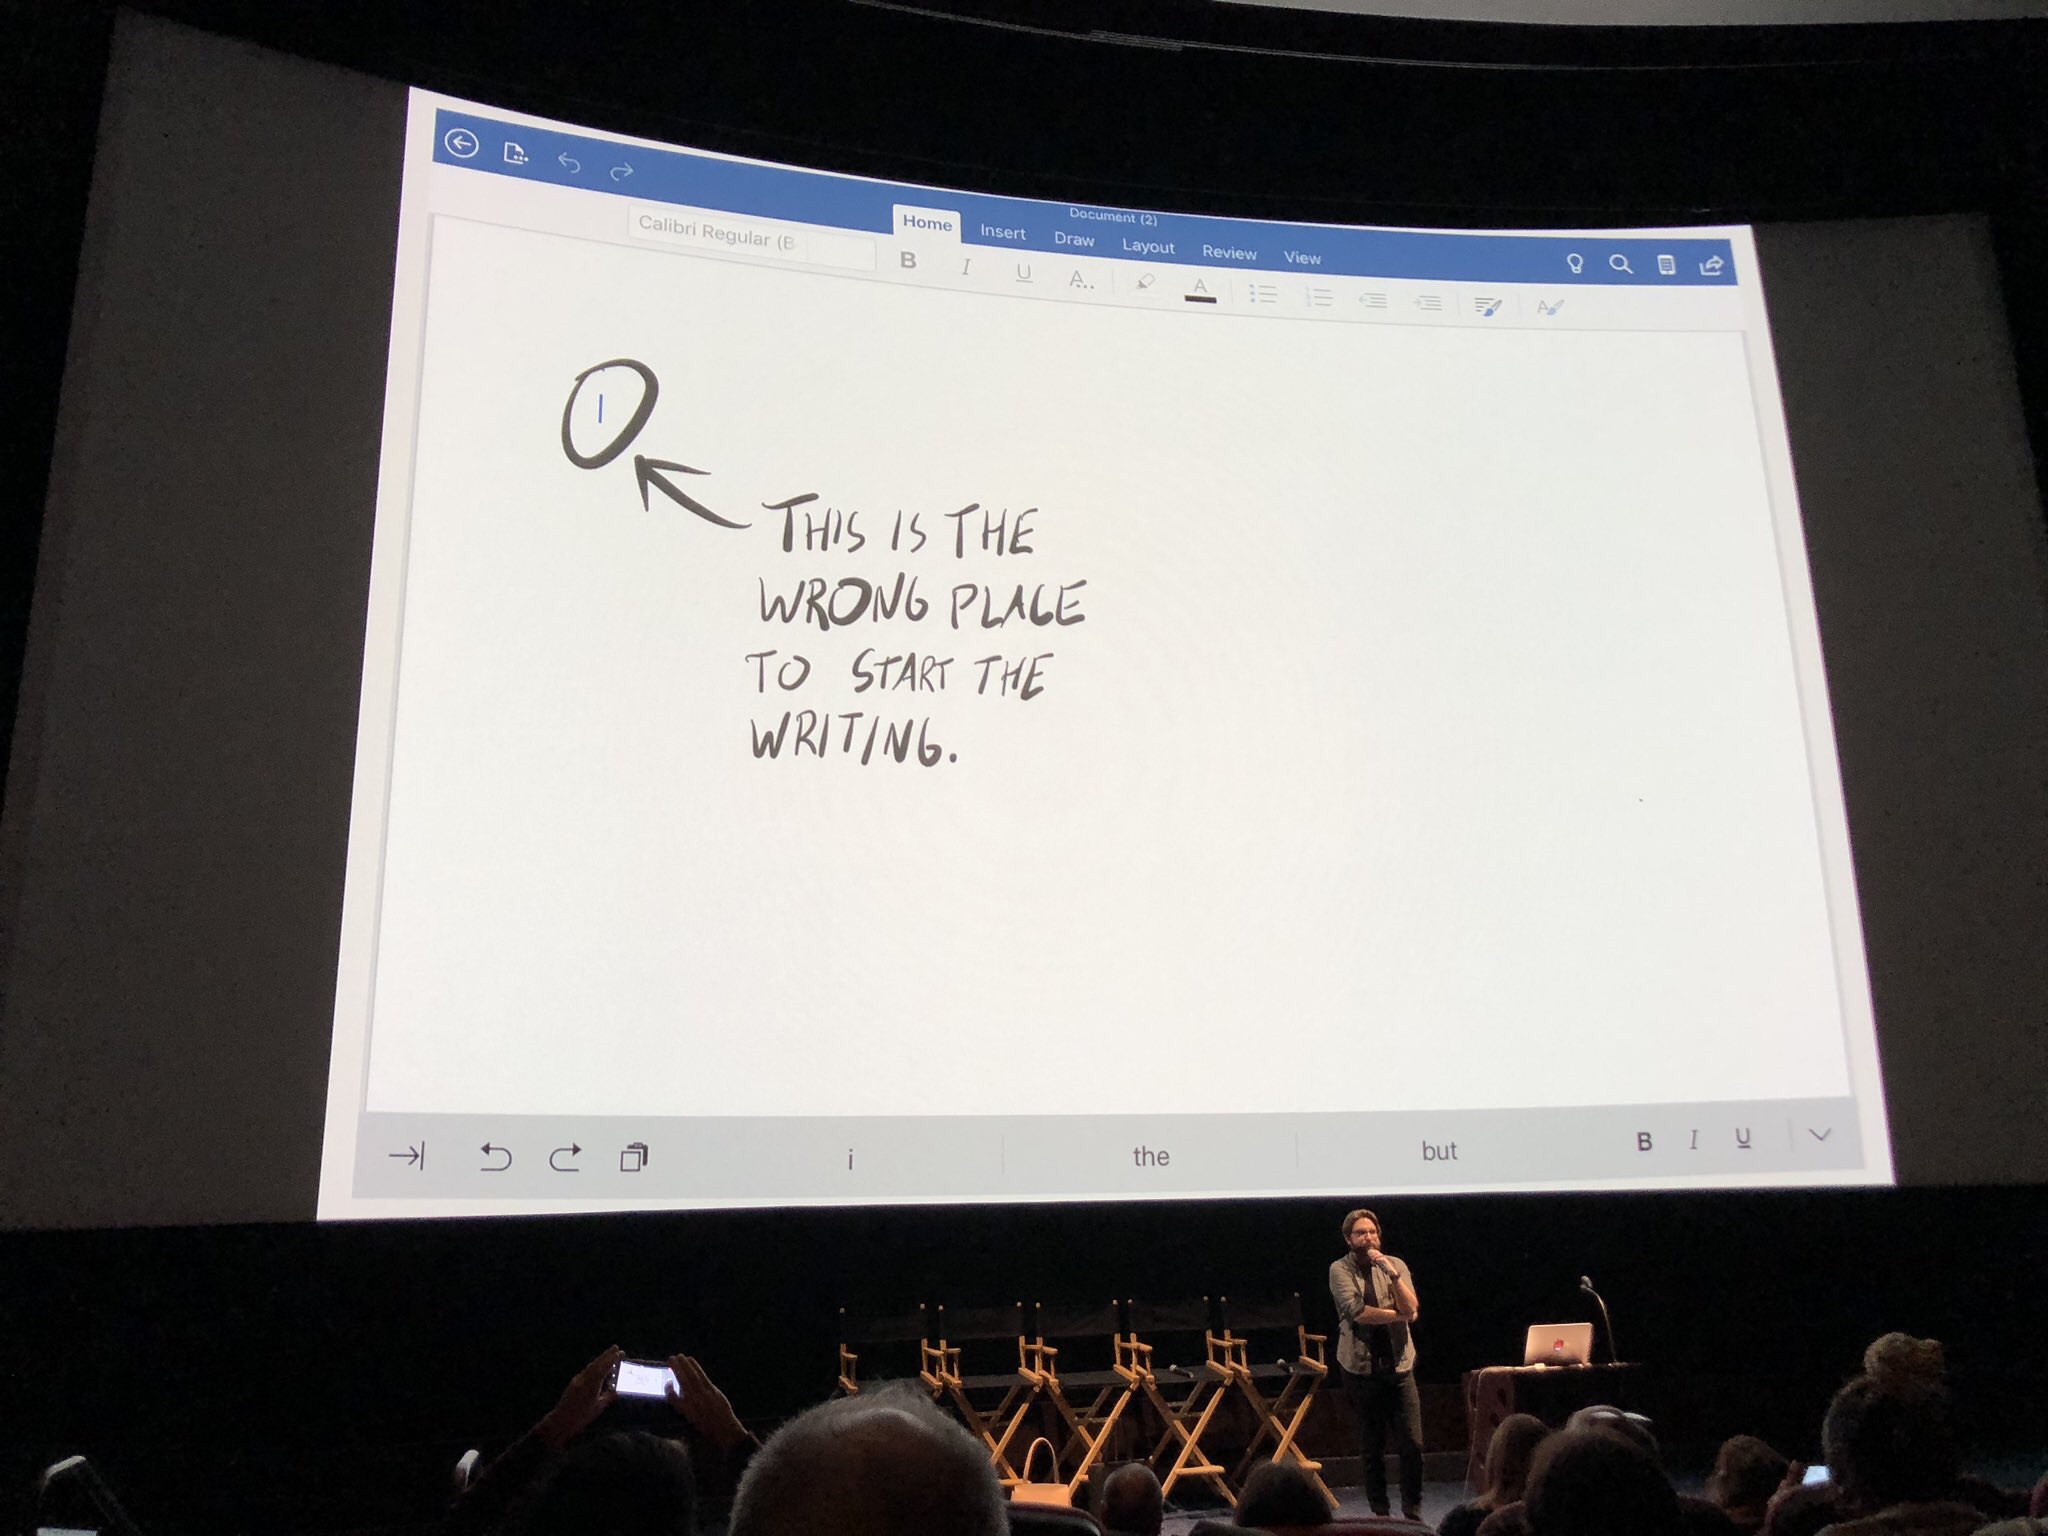 Scott speaking in a movie theatre space in front of a large screen displaying his slides.